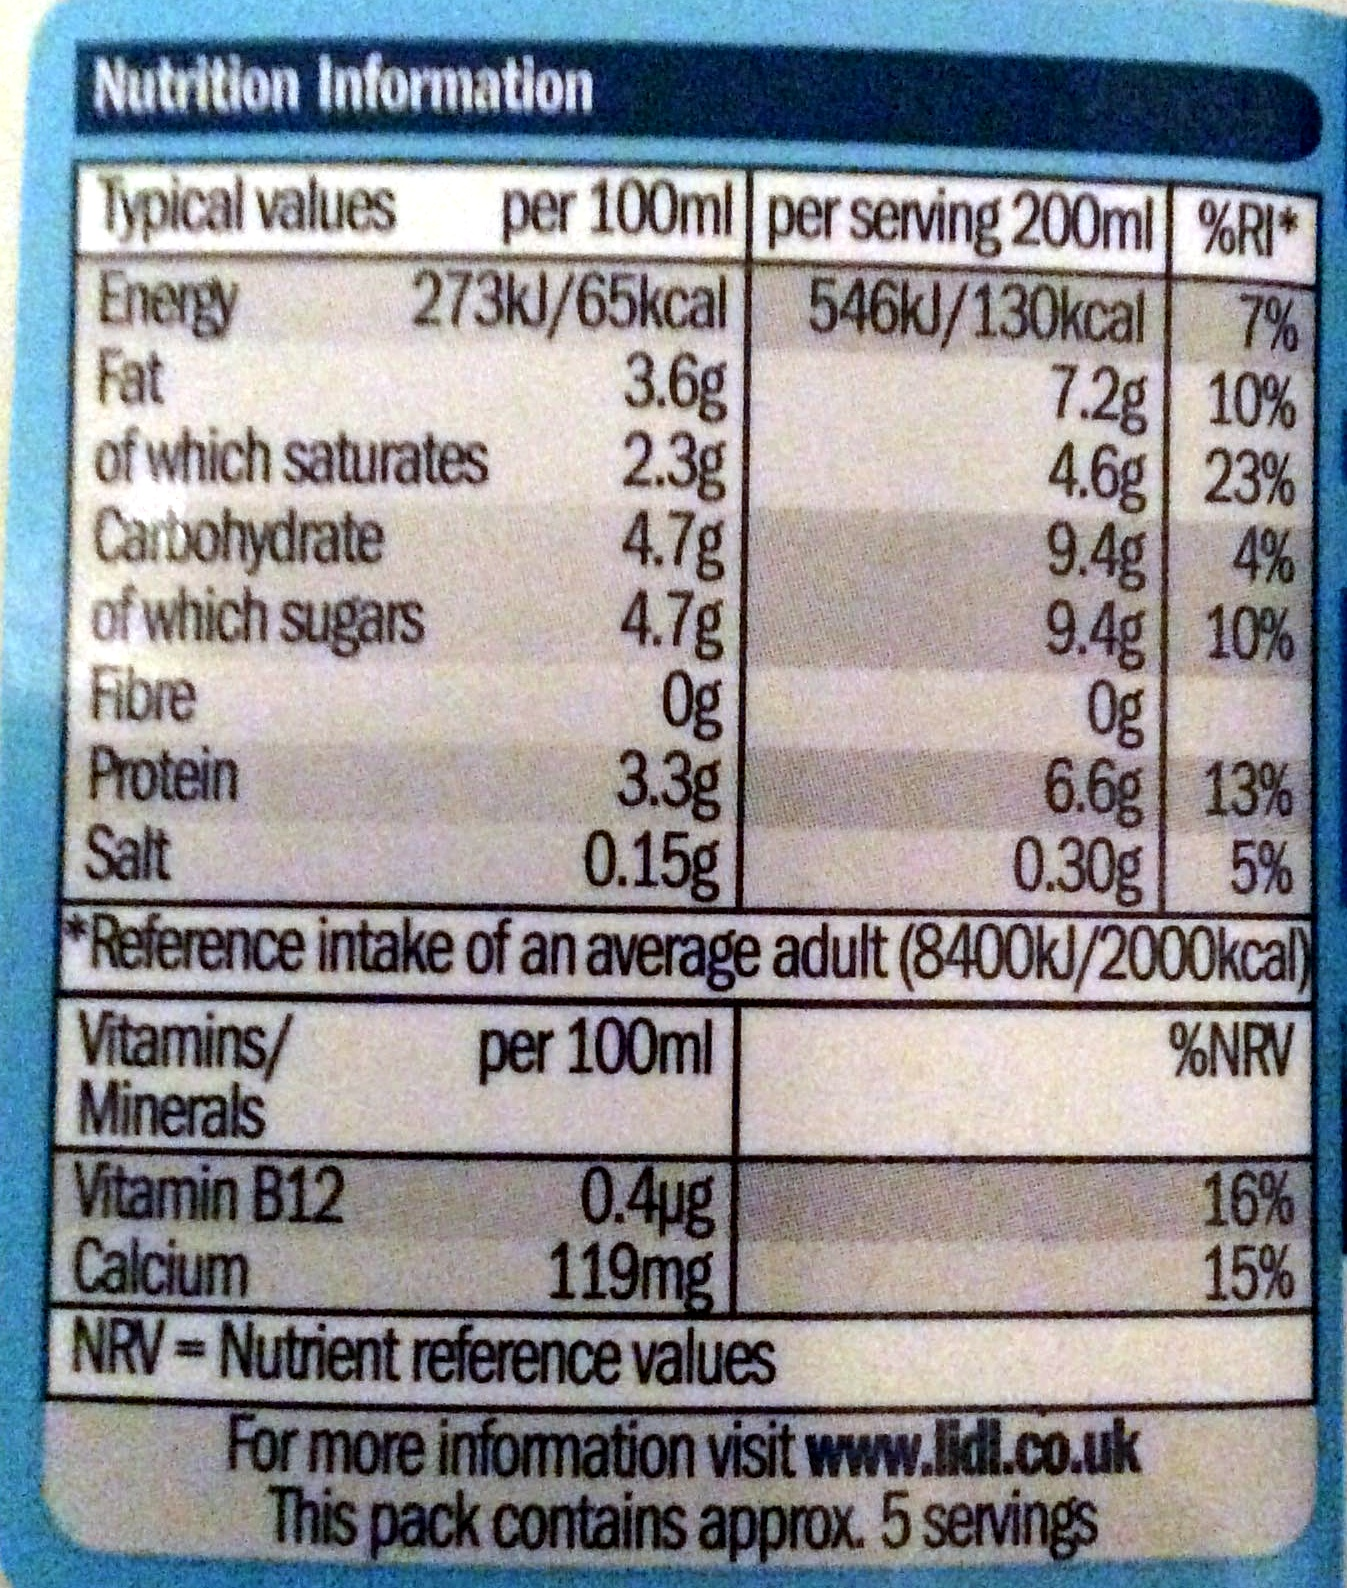 Whole Milk Nutrition Facts 100ml